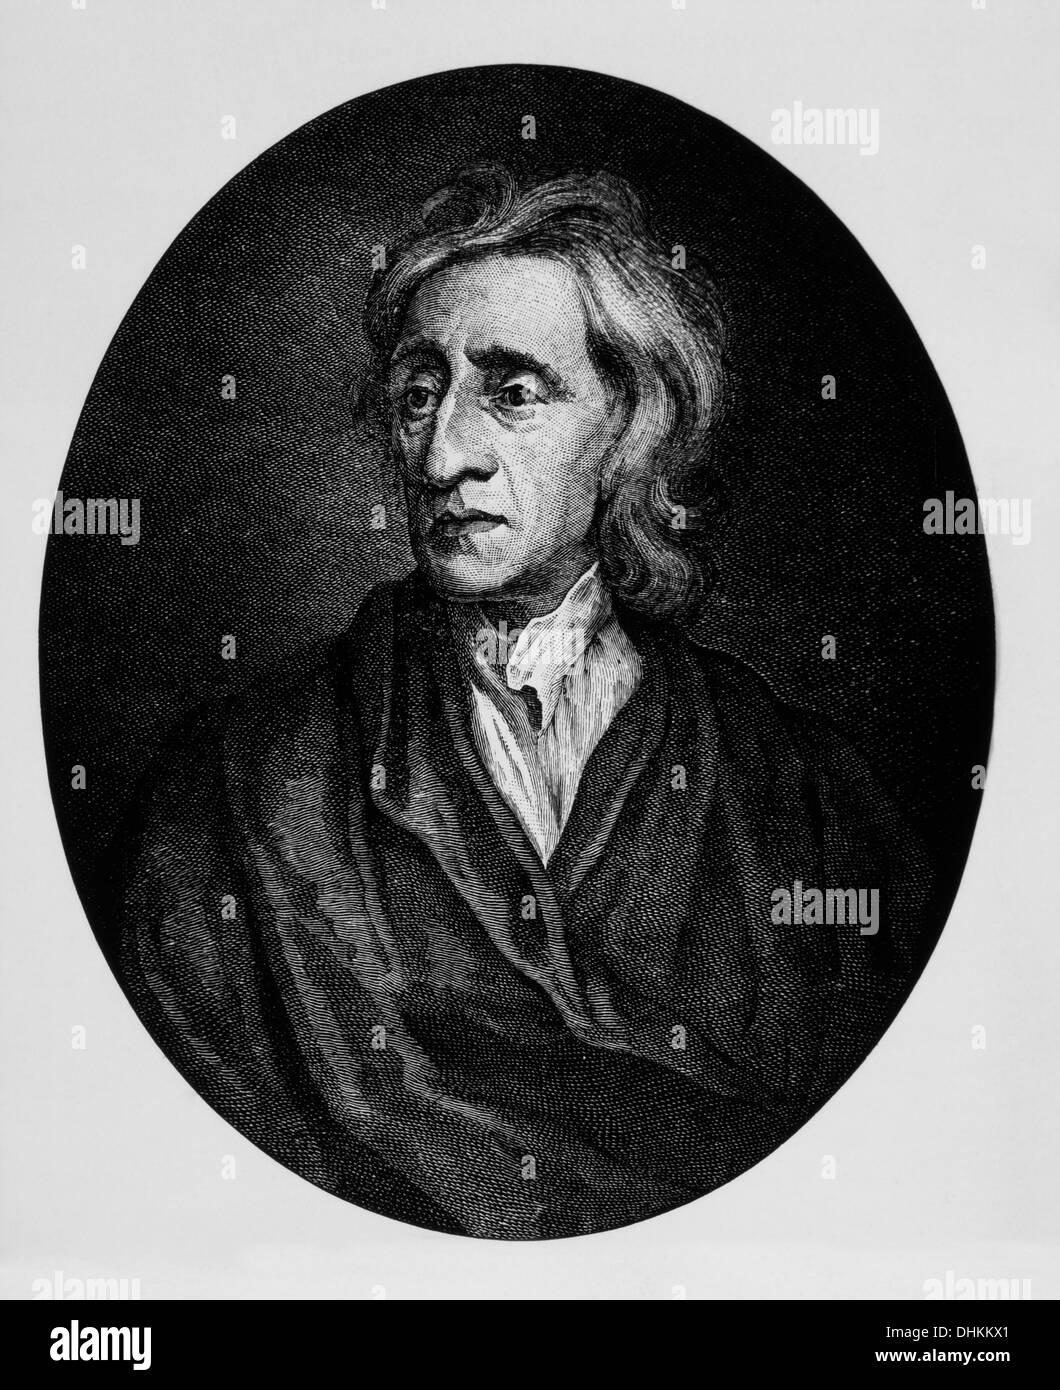 John Locke (1632-1704), English Philosopher, Founder of British Empiricism & Widely Known as the Father of Classical Liberalism - Stock Image